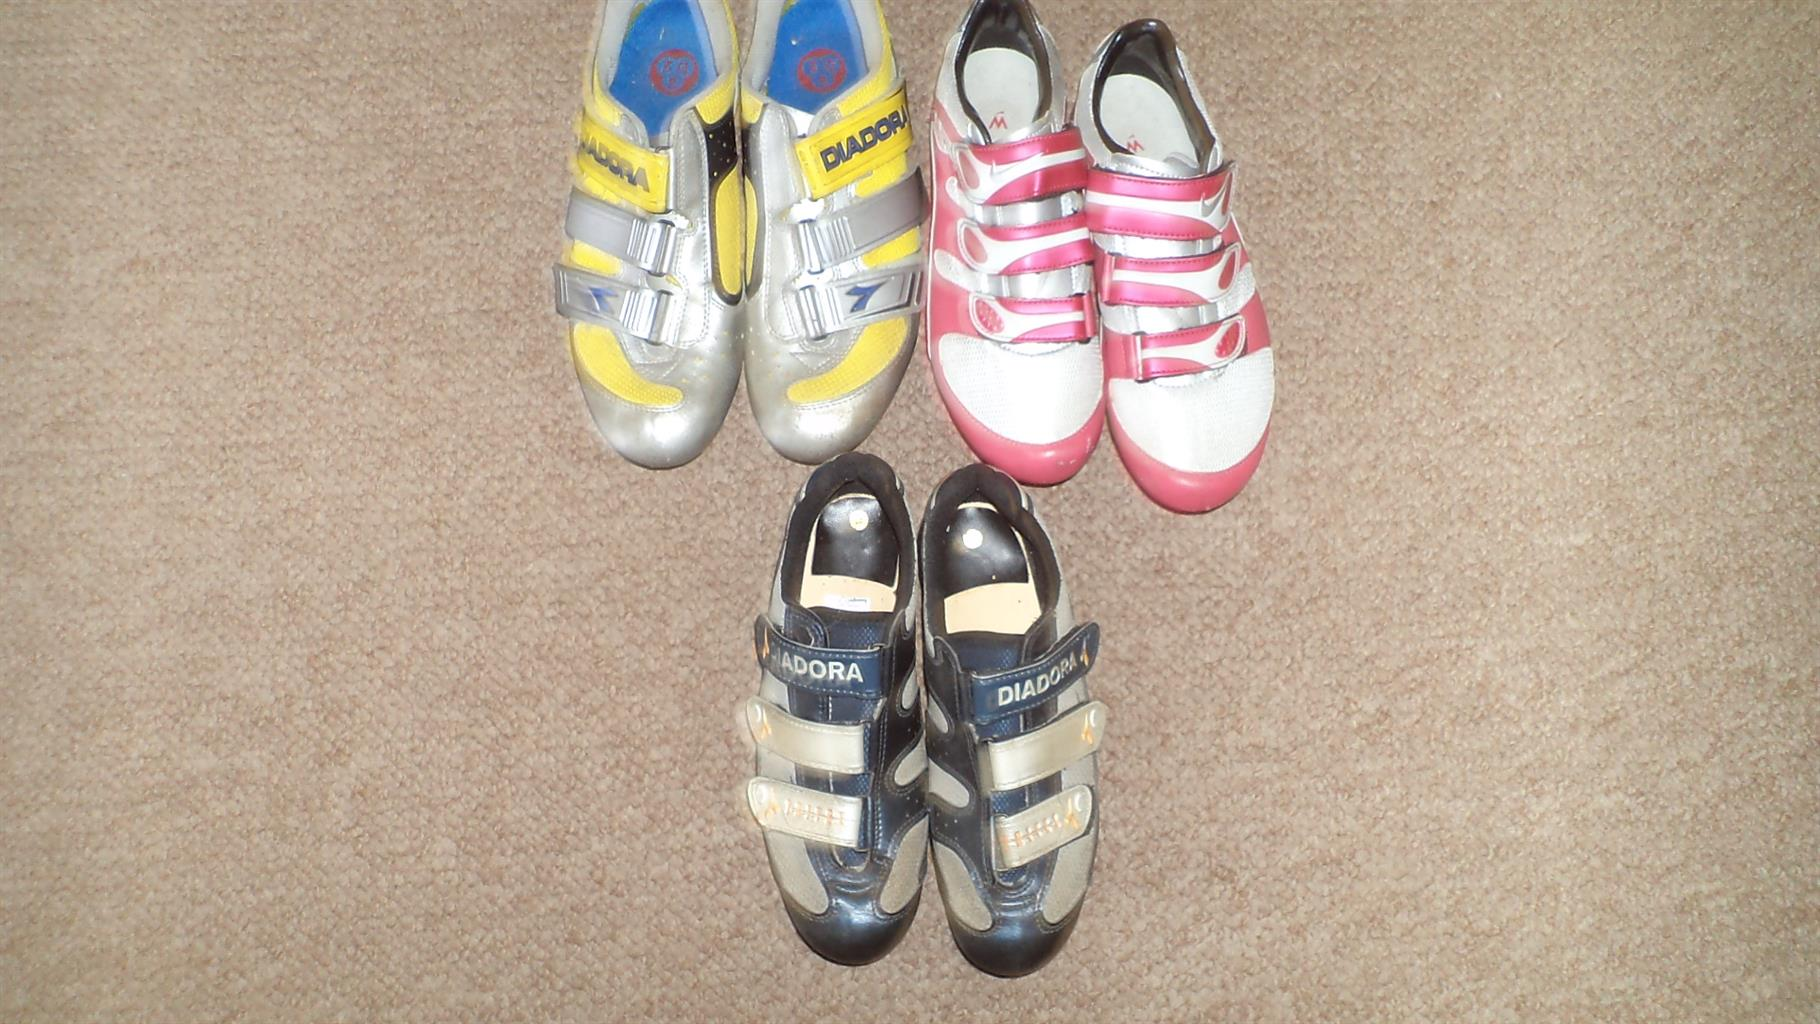 assorted cycling shoes